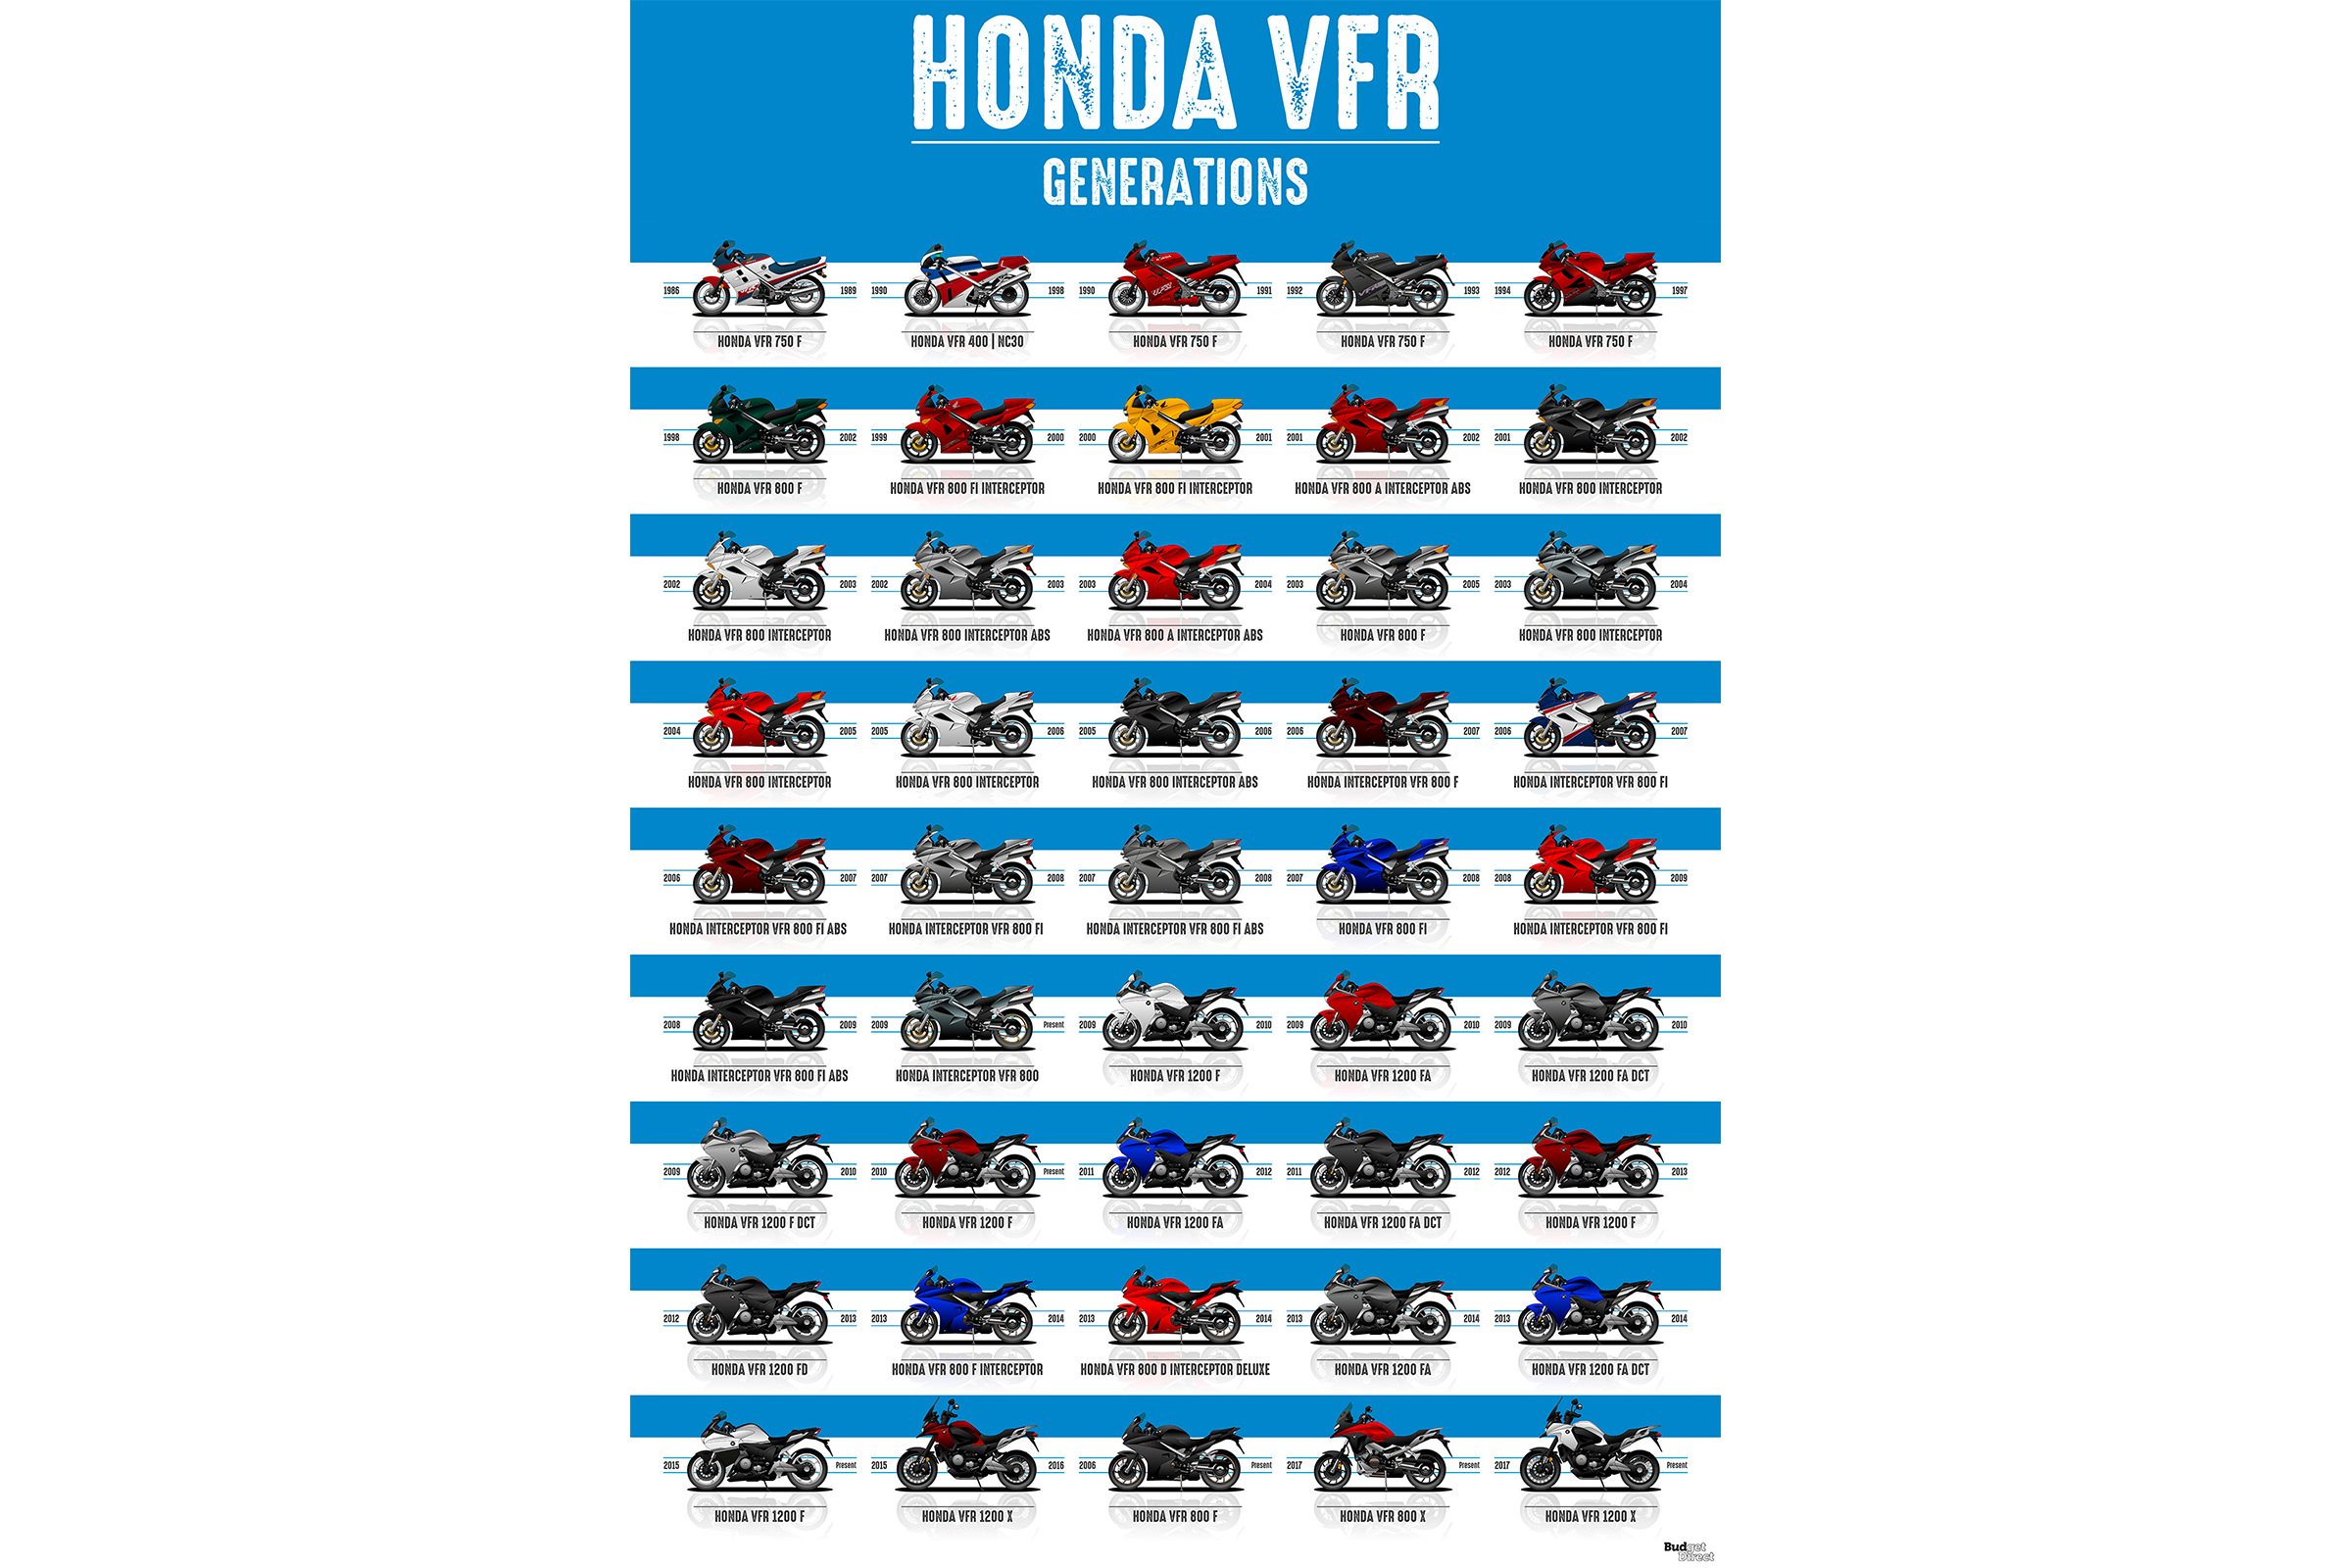 Different generations of Honda Accord cars